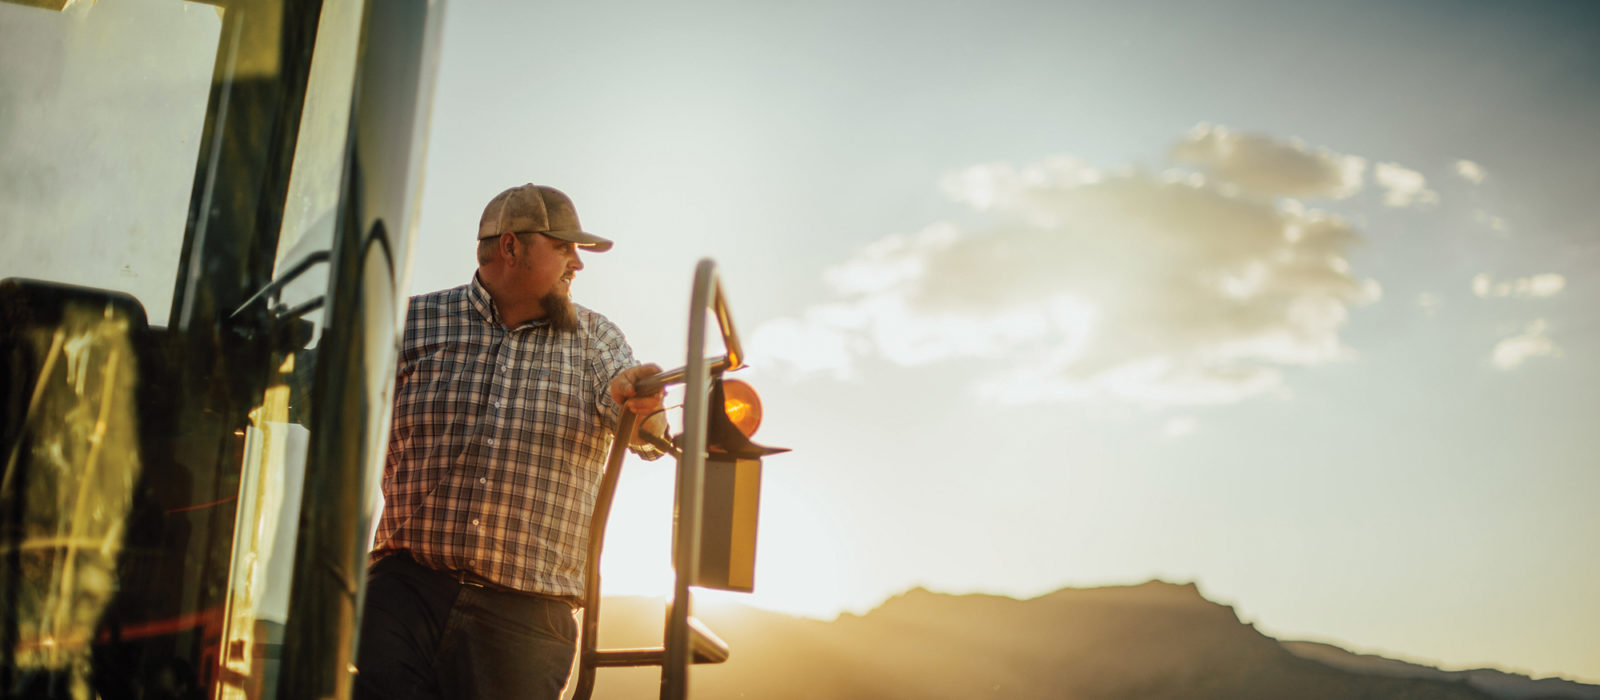 Jon Arreche looking out on a field at sunset from a piece of farm equipment